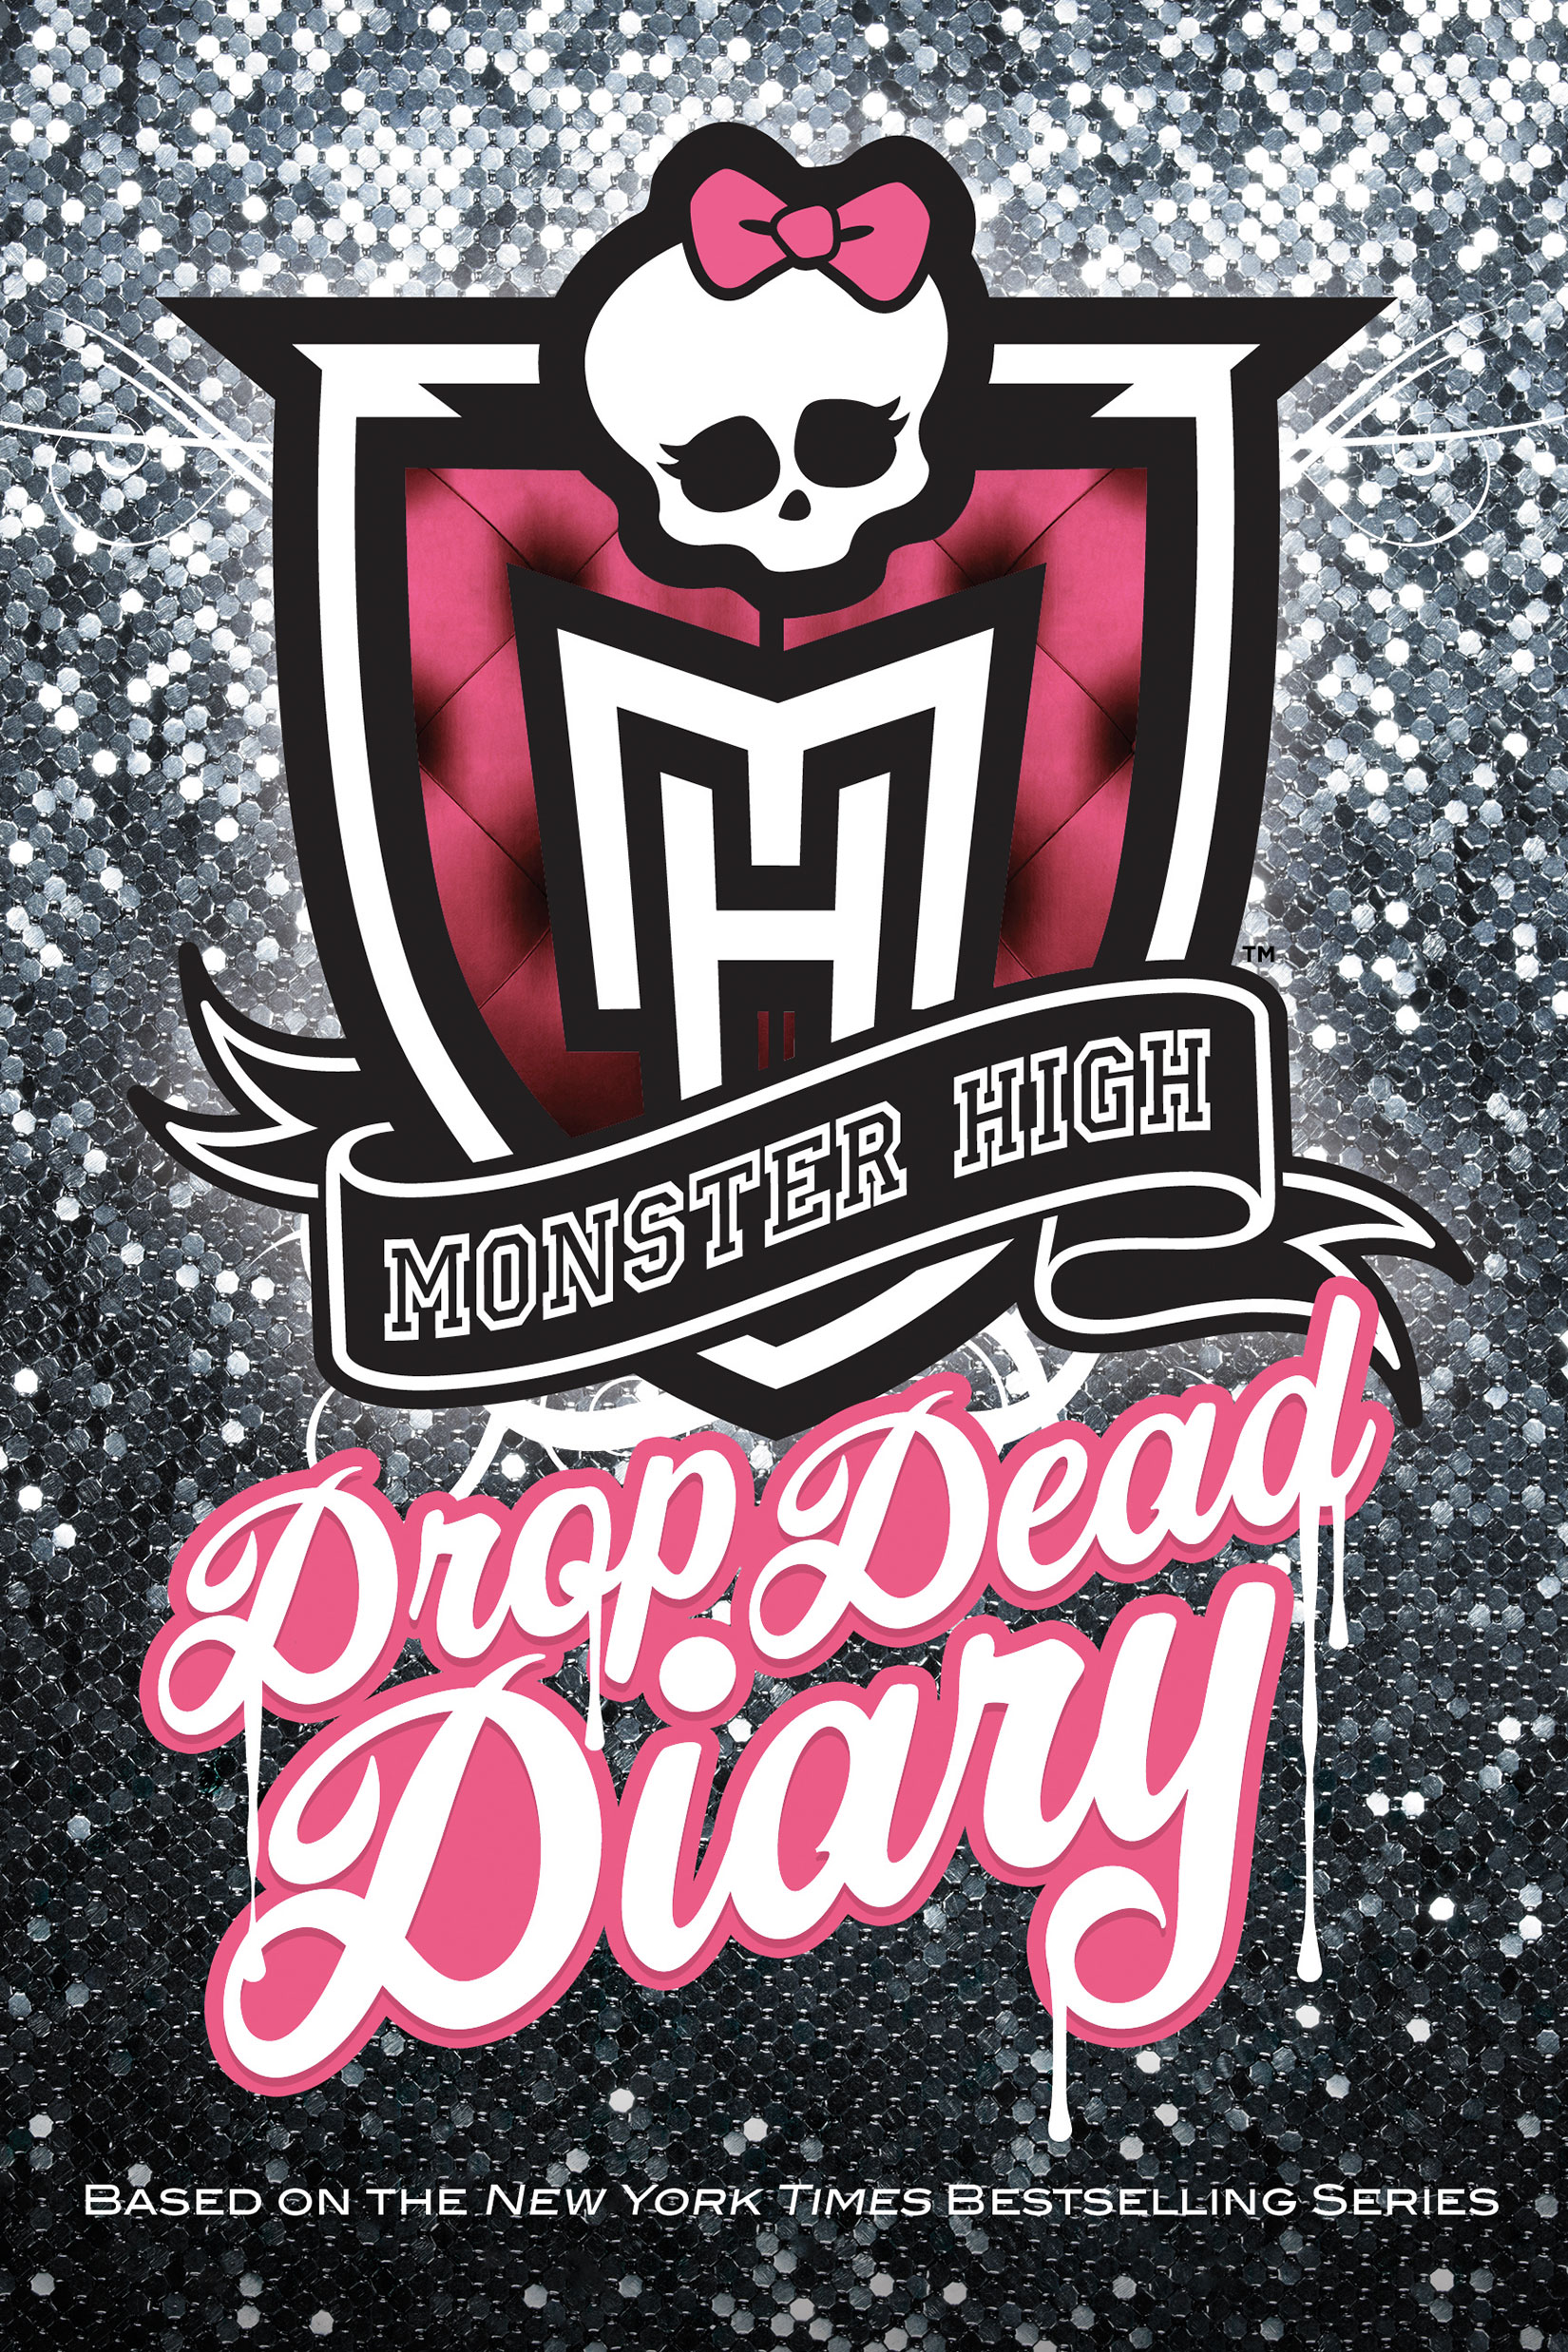 Mattel's Monster High Drop Dead Diary  Designed by Ben Mautner for Little, Brown and Mattel Art Directed by Patti Ann Harris